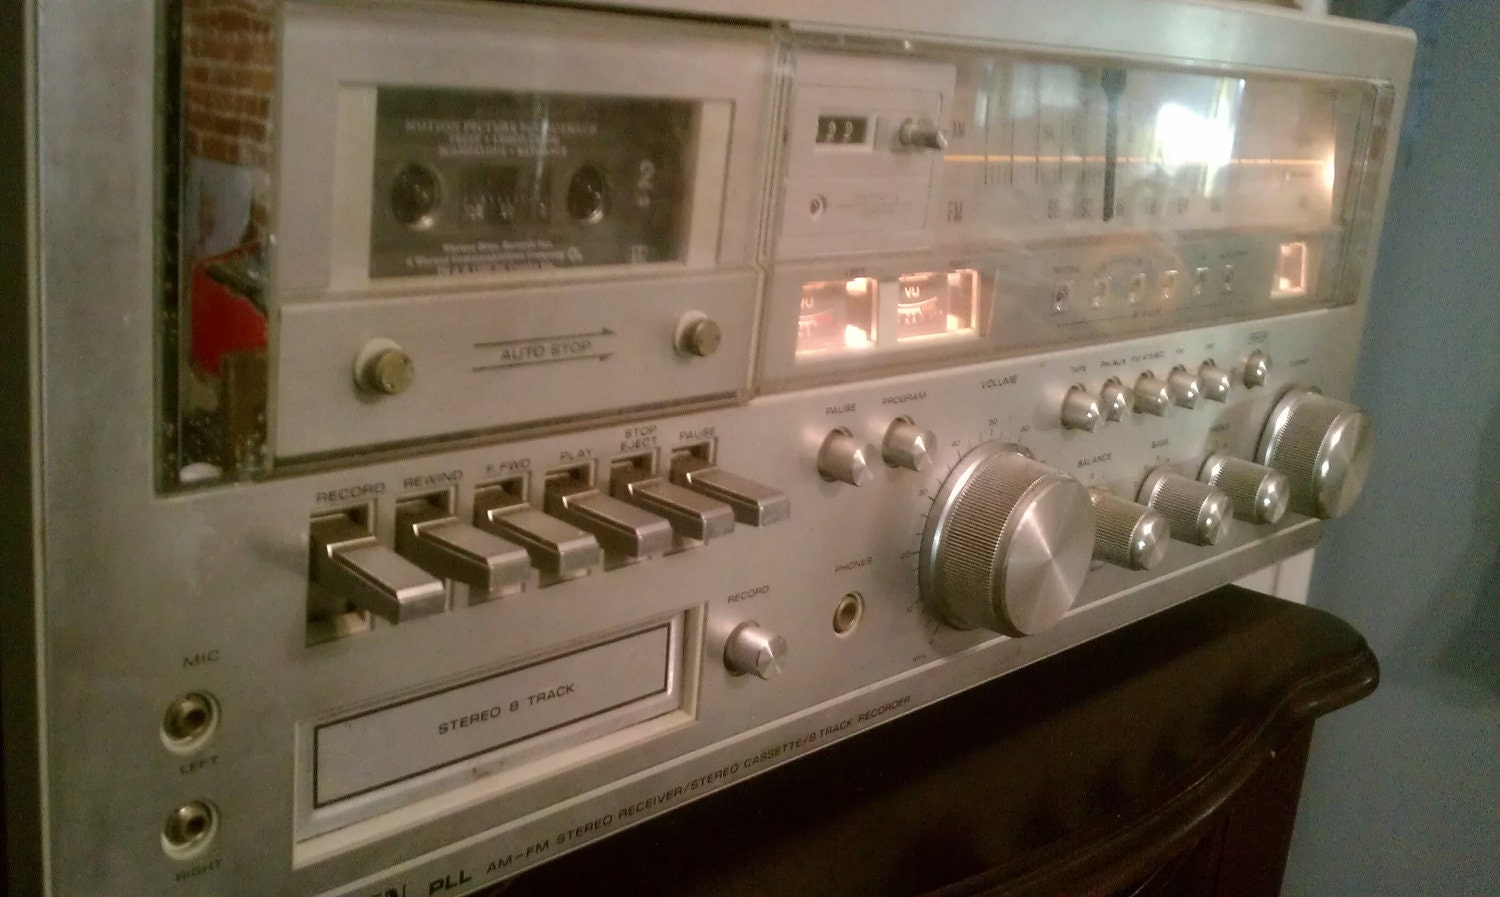 Soundesign Stereo System With Cassette Deck 8 Track Player And